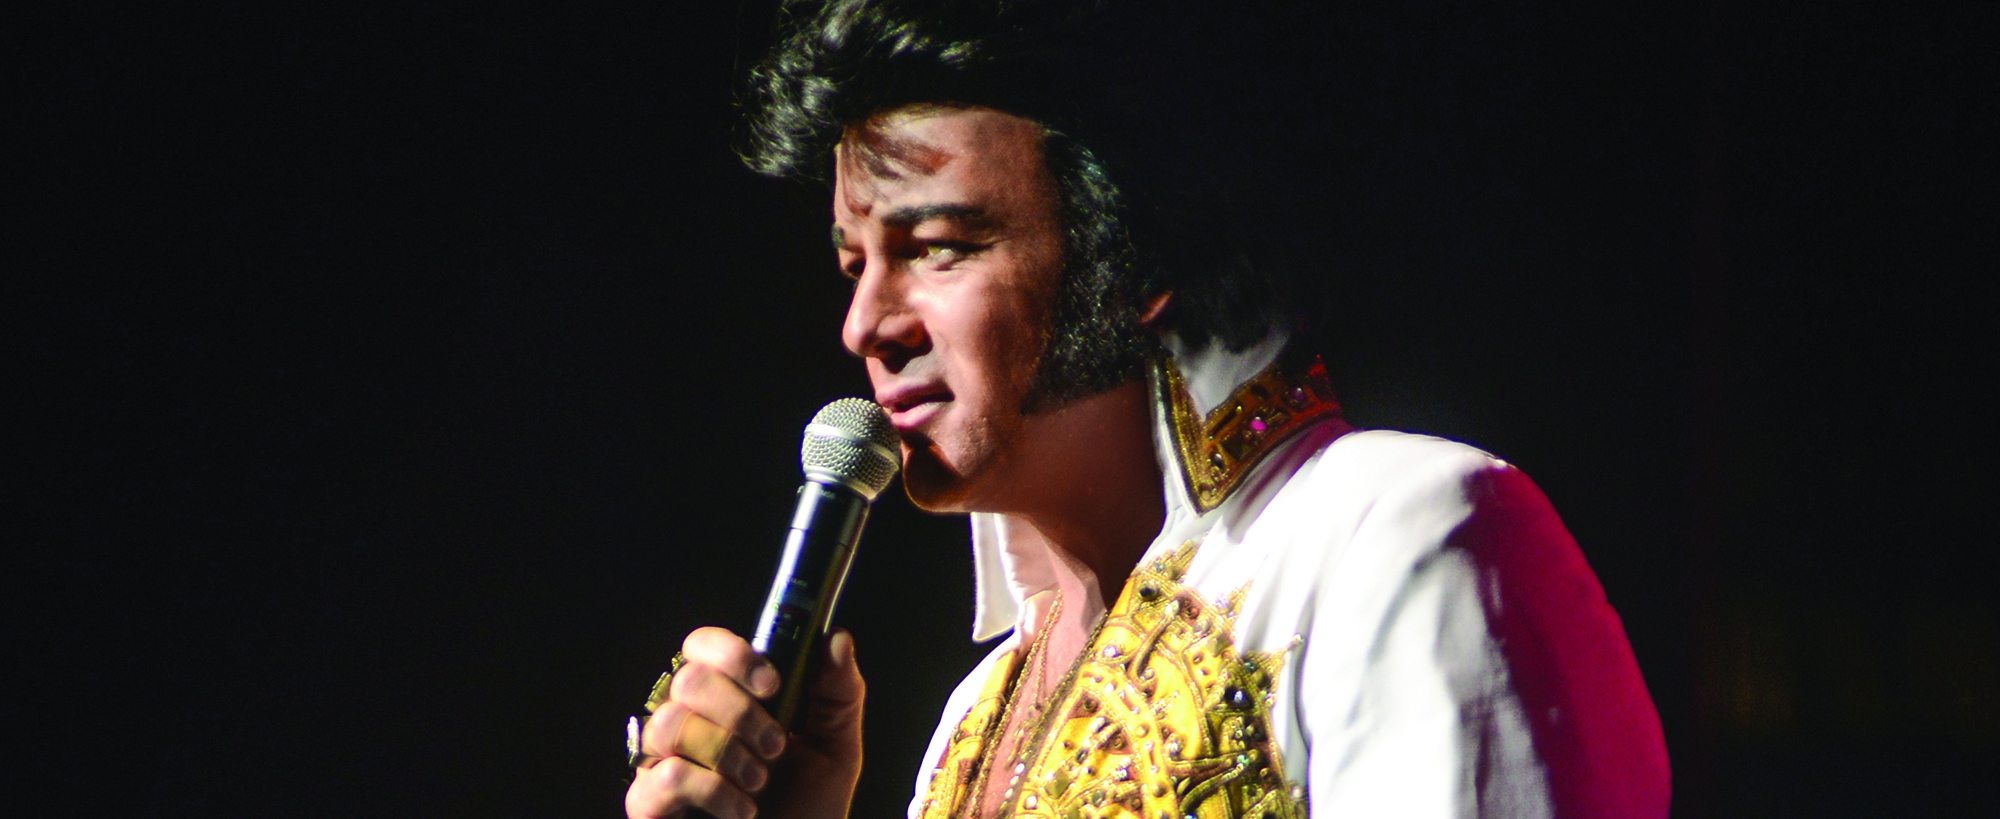 David Lee: The Ultimate Elvis